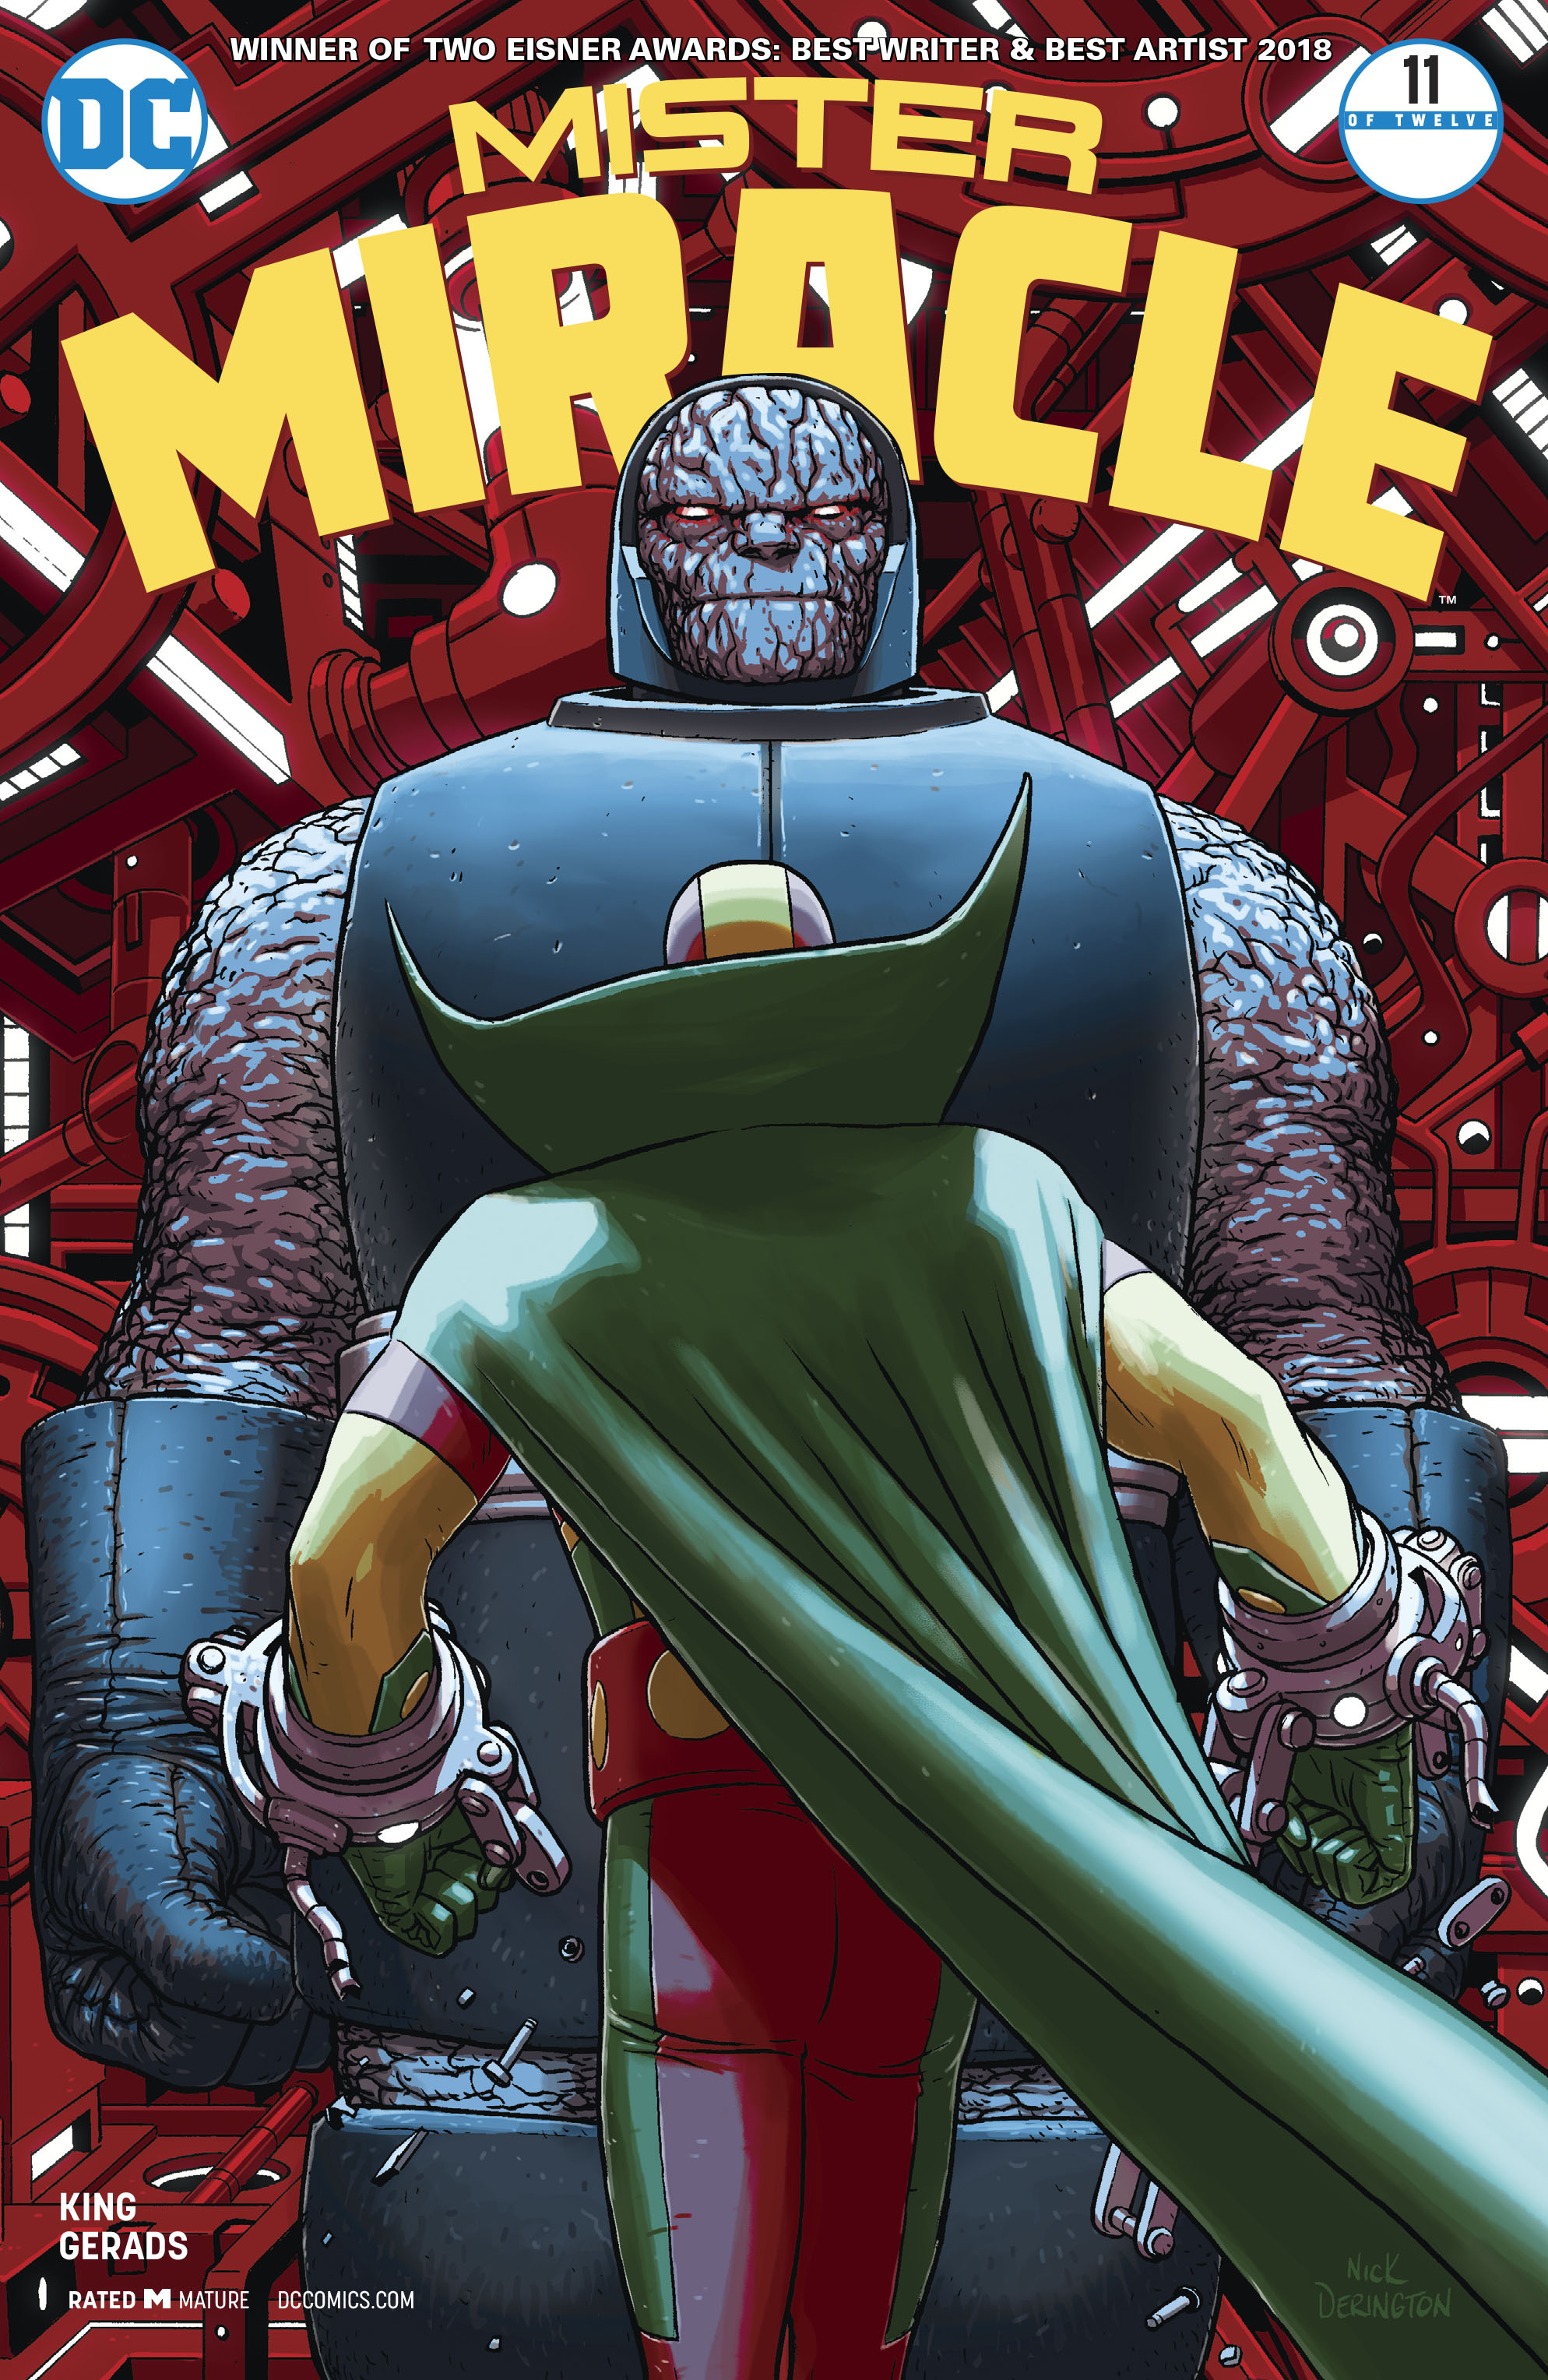 Mister Miracle #11 of 12